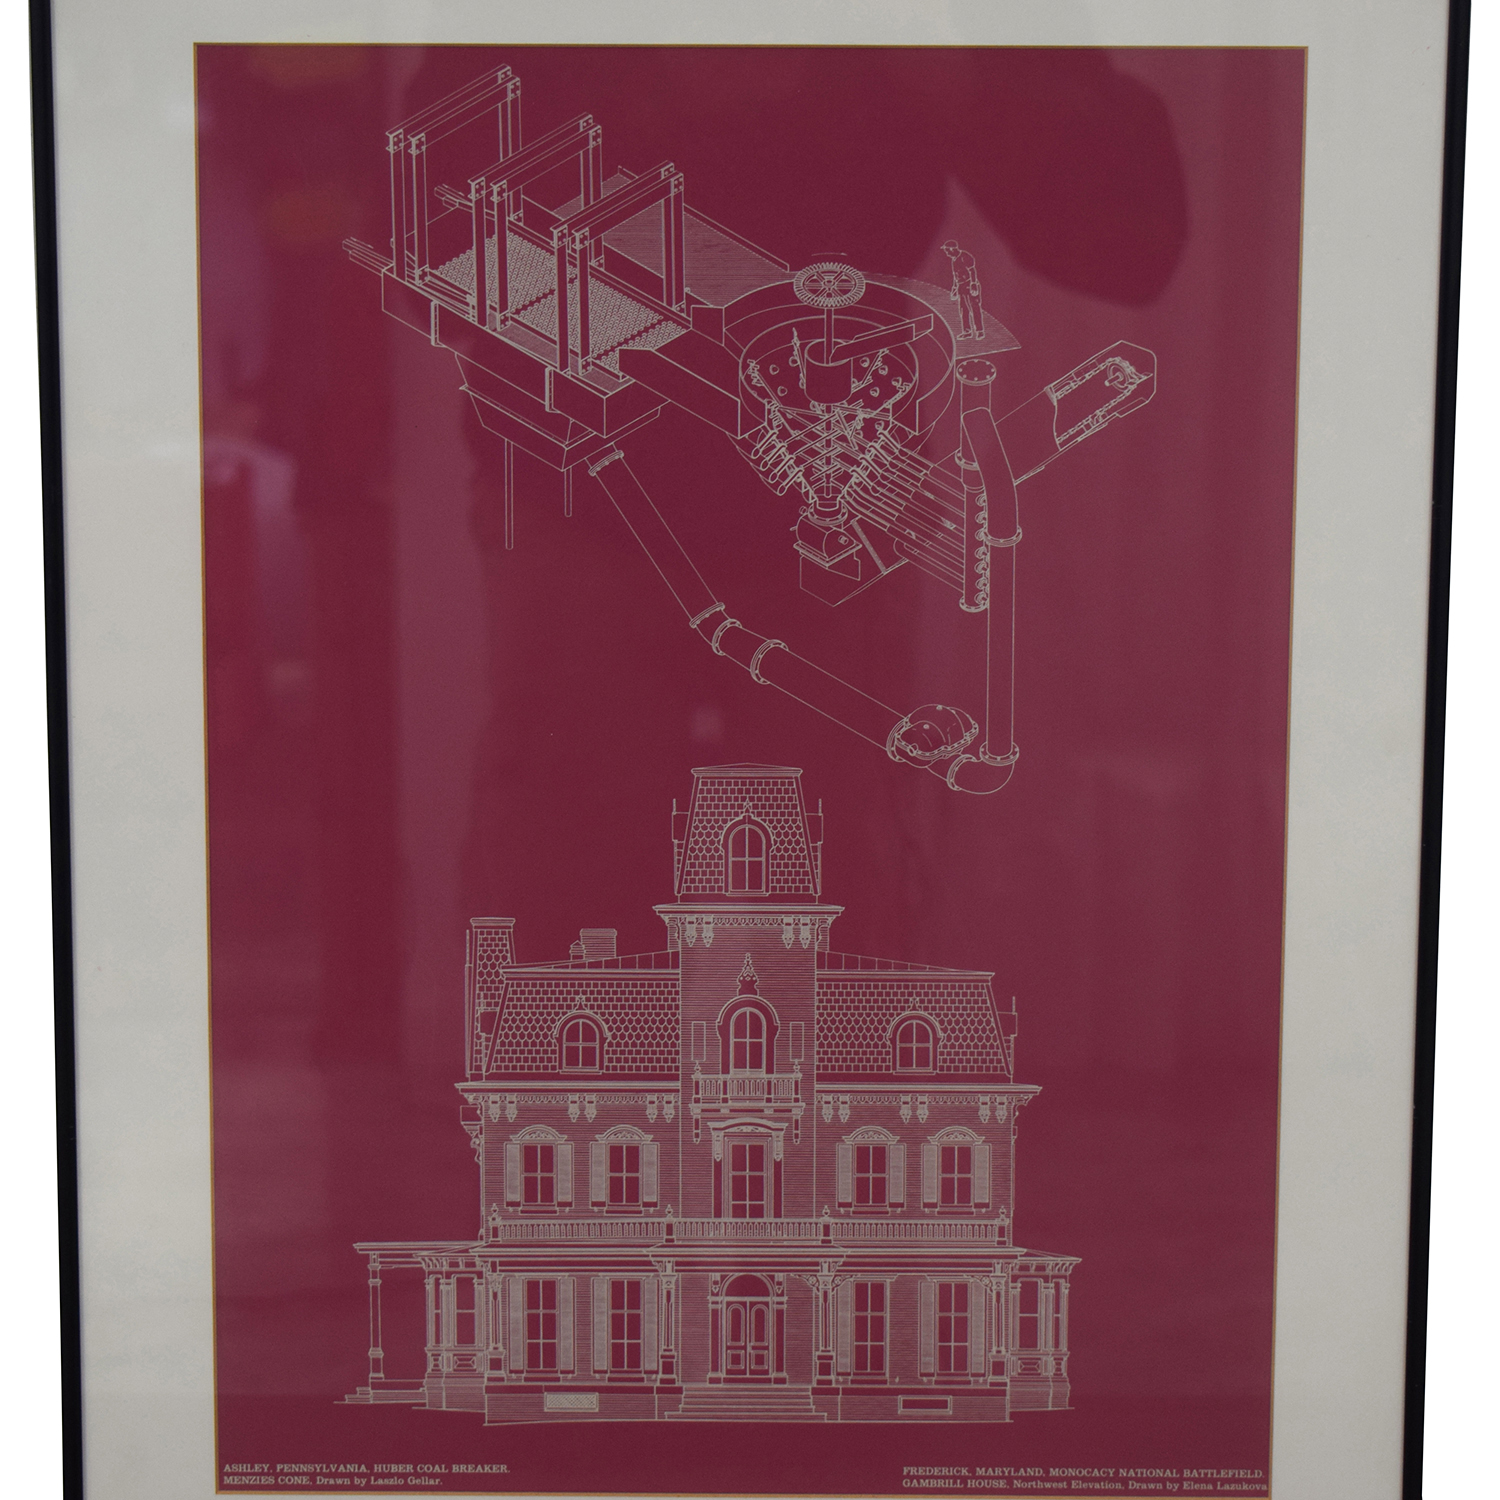 Building and Machine Pink Blueprint Framed Wall Art nyc